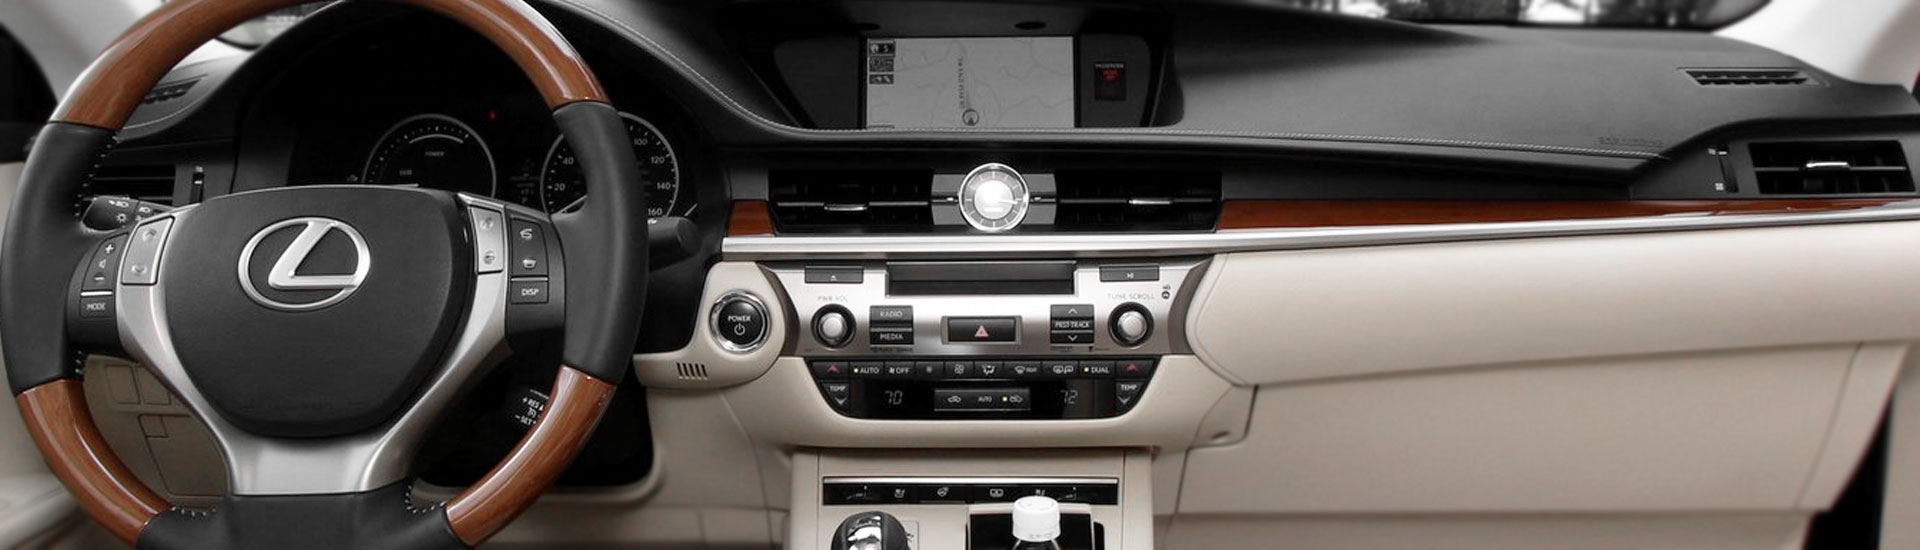 2013 Lexus GS Custom Dash Kits